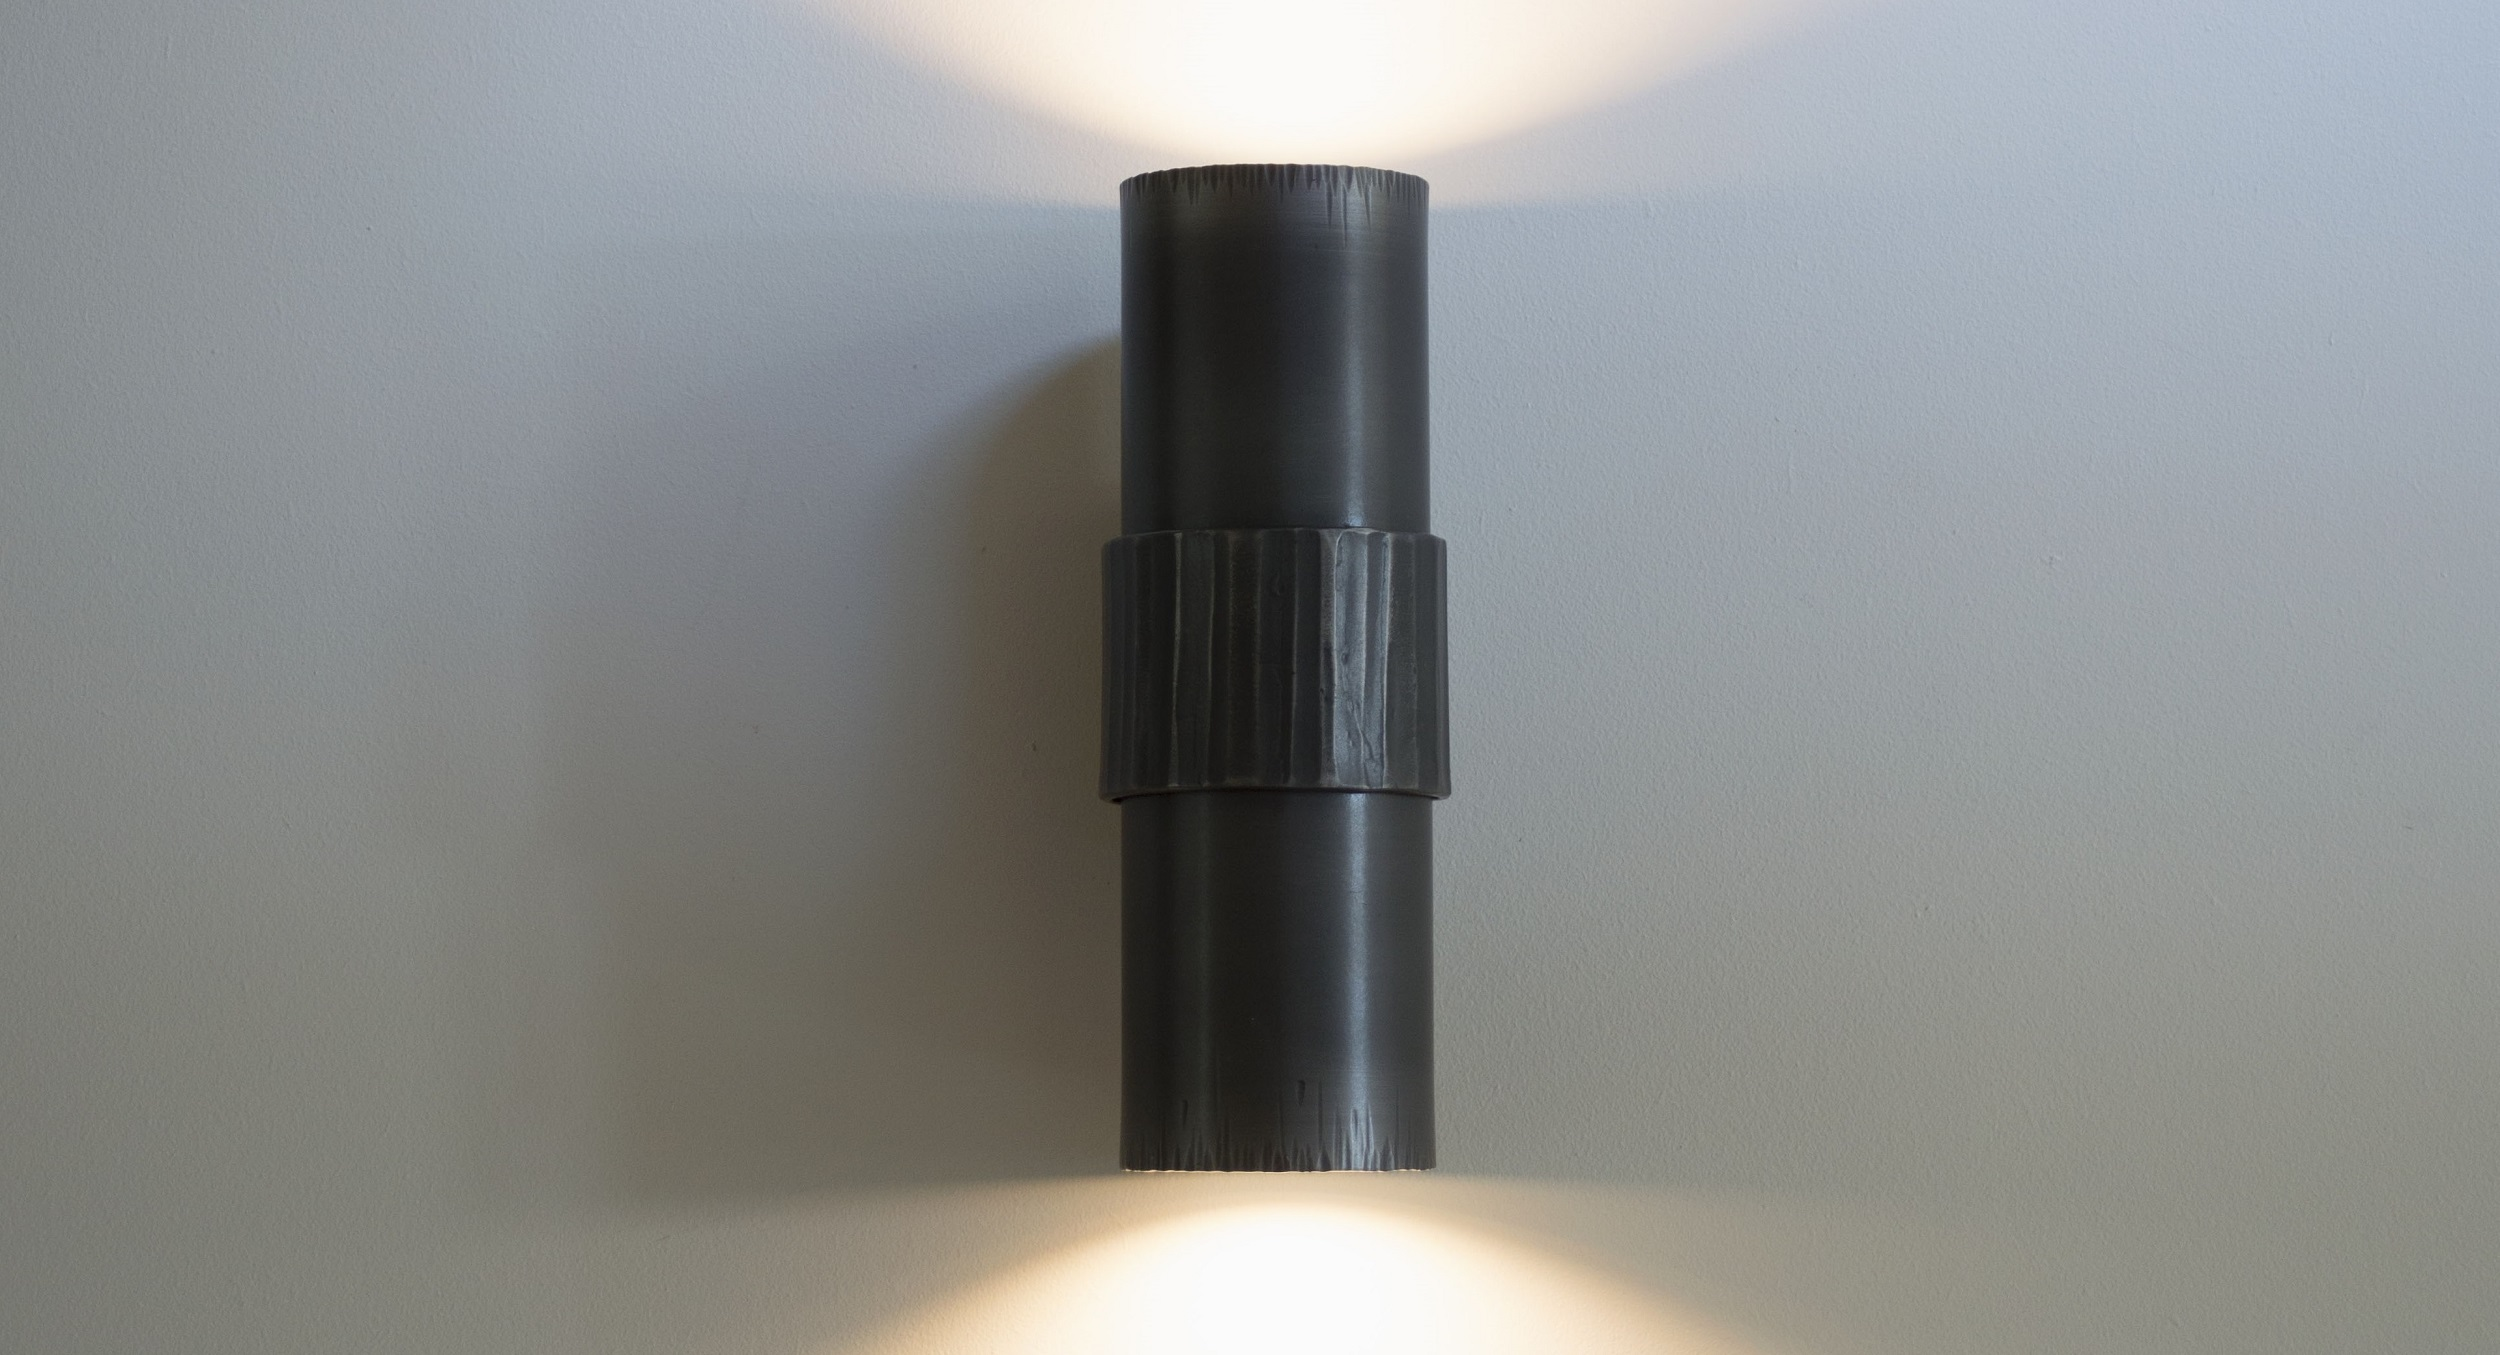 Press release - New up-and-down light is a win-win for wall lighting